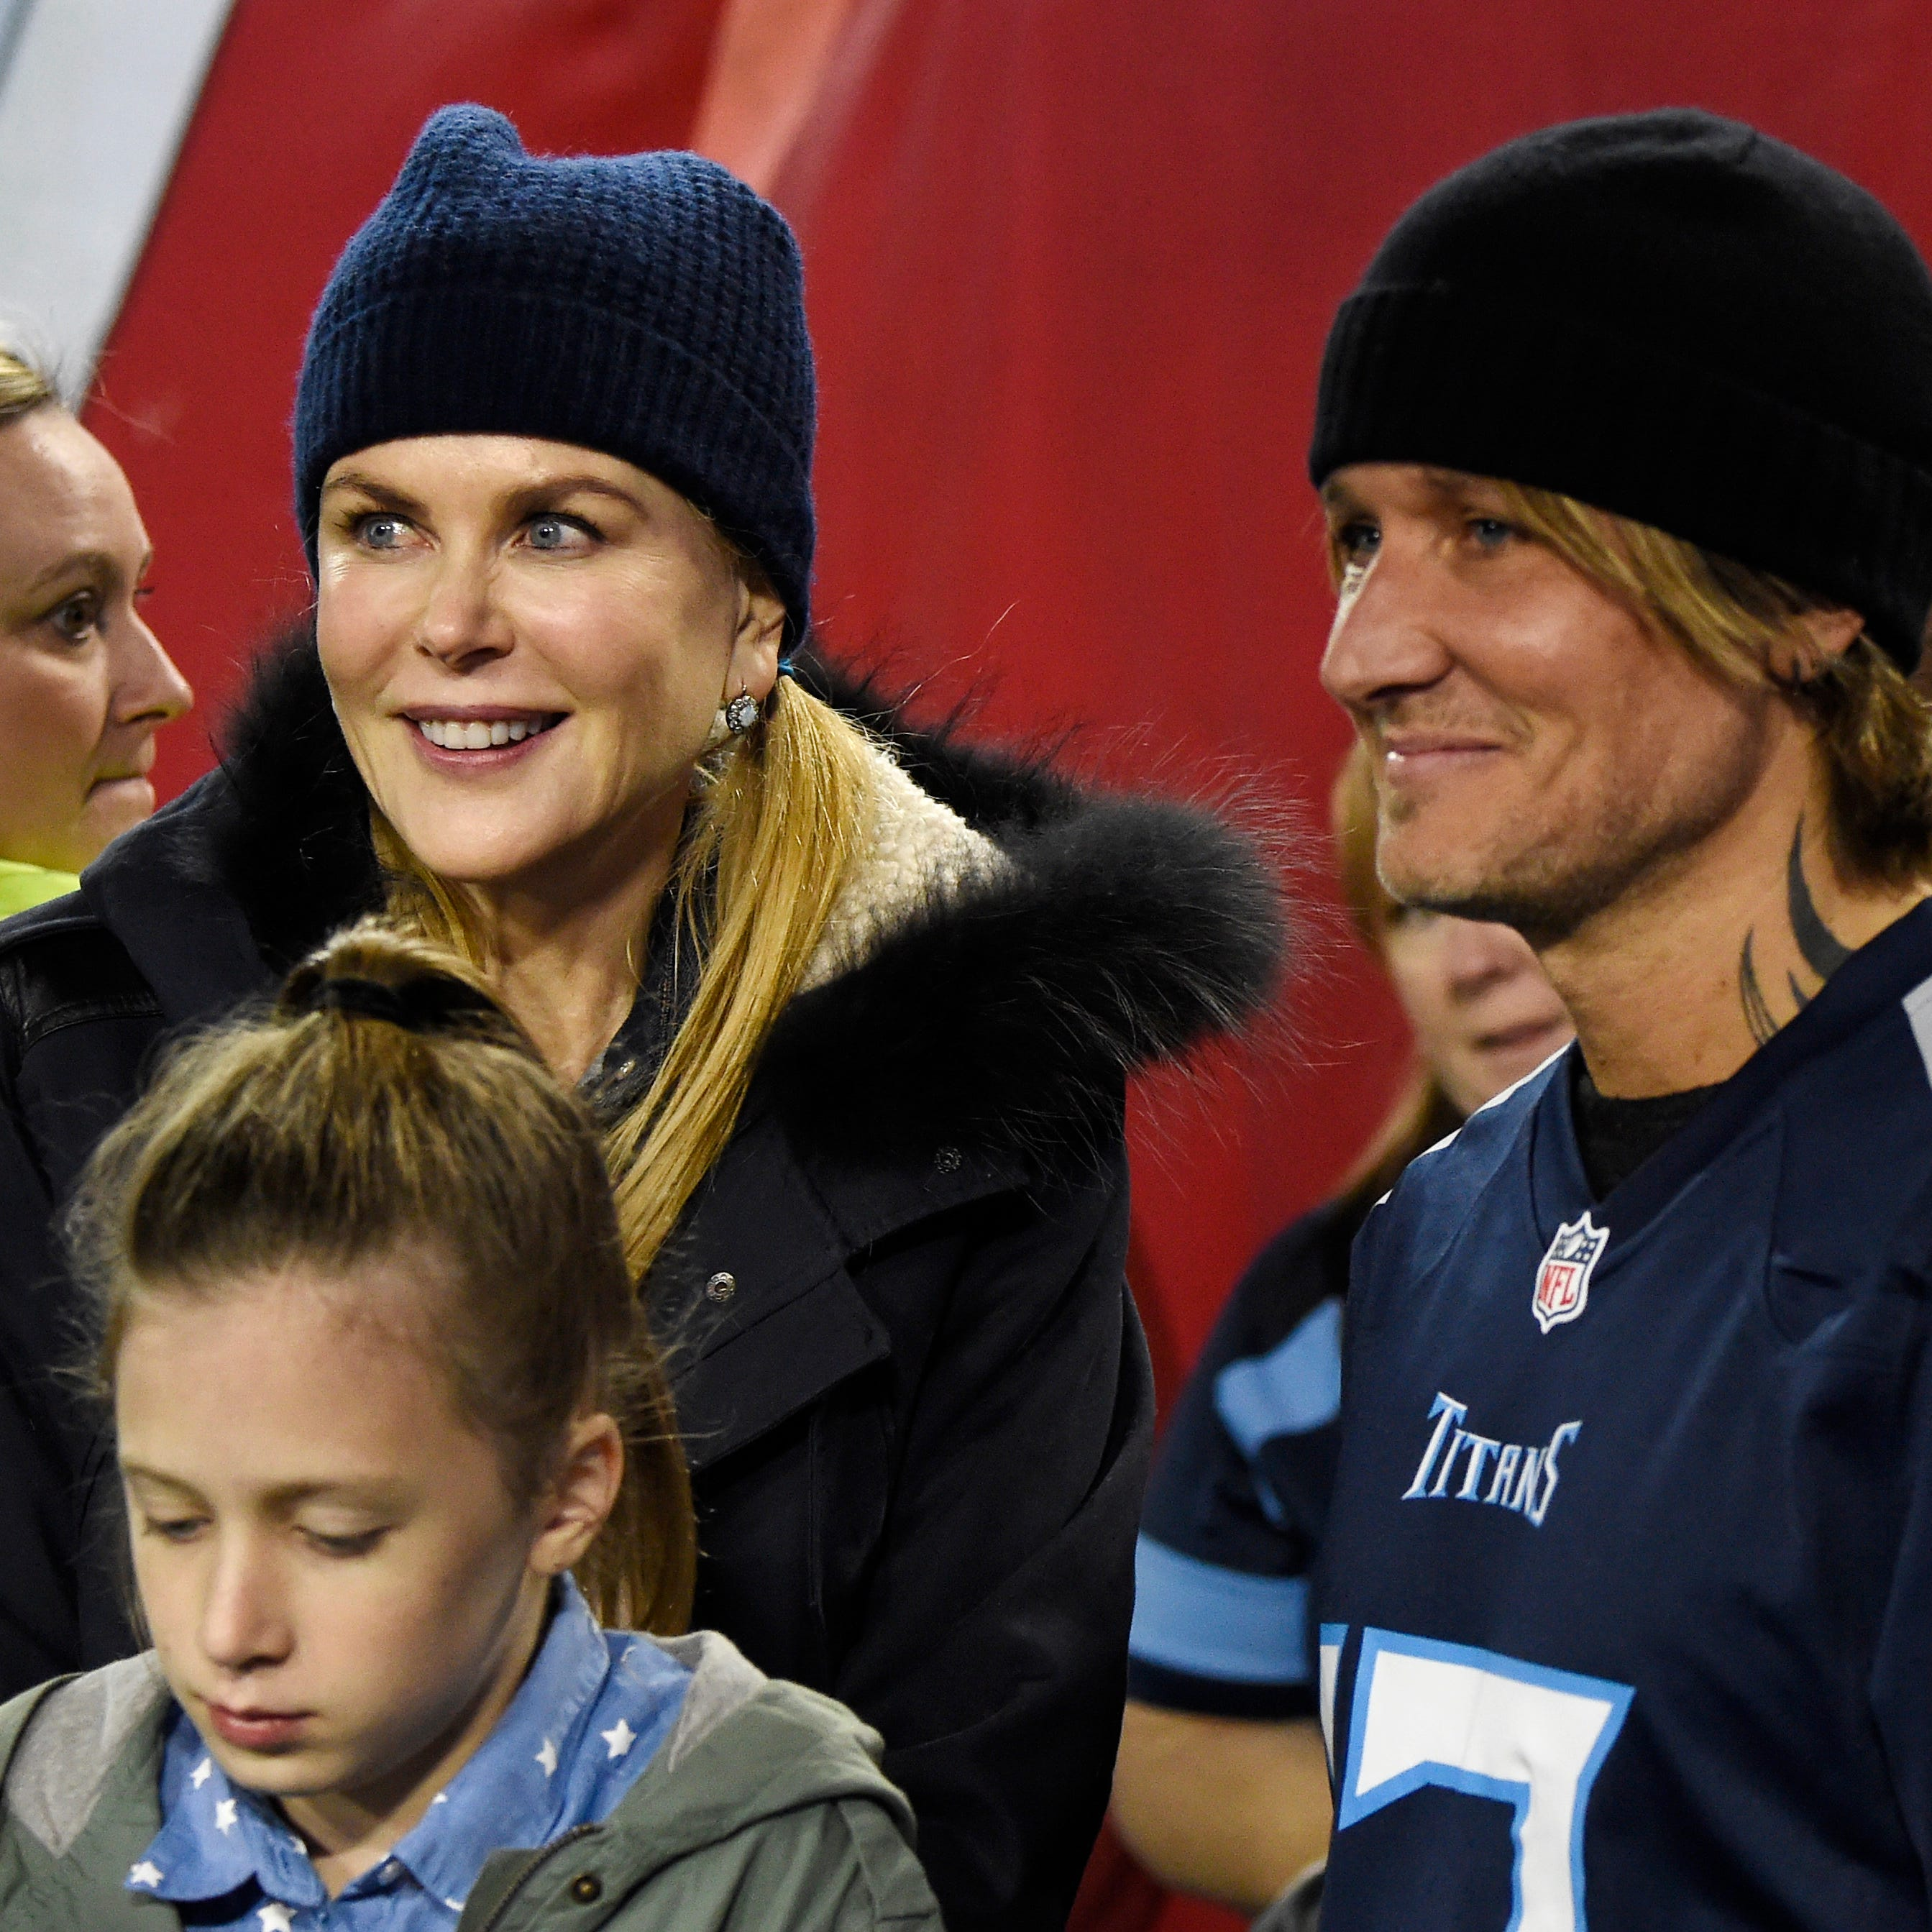 Keith Urban, Nicole Kidman at Titans-Colts game